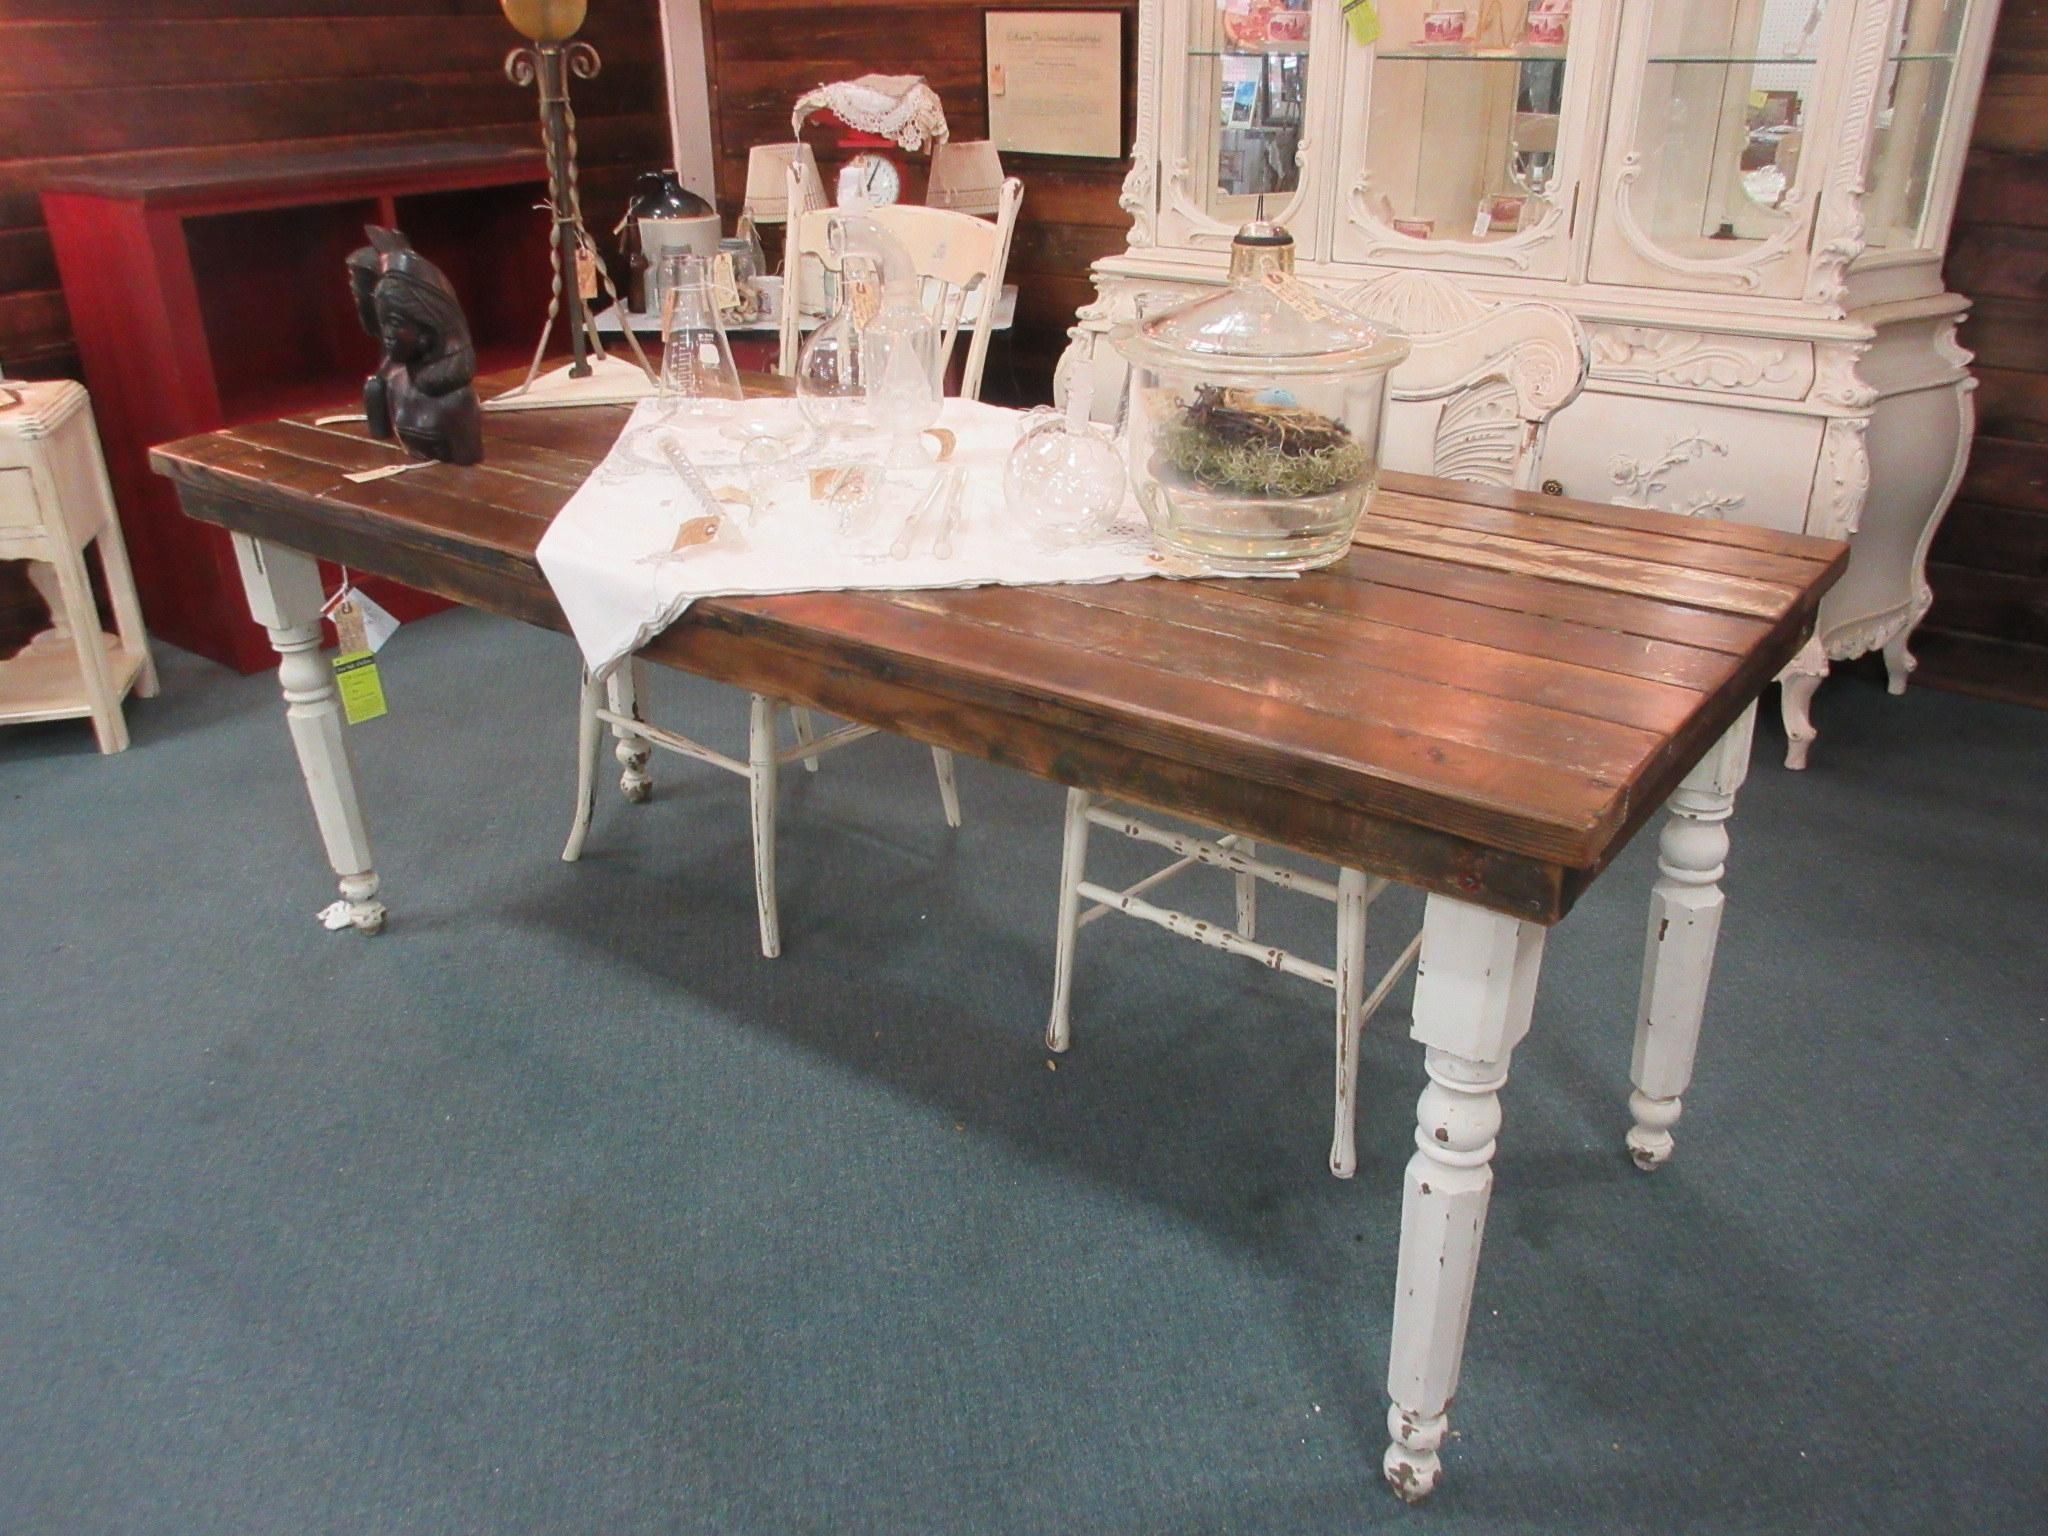 Harvest Table Made Out Of Old Doors From Vendor 454 In Booth 140 Priced